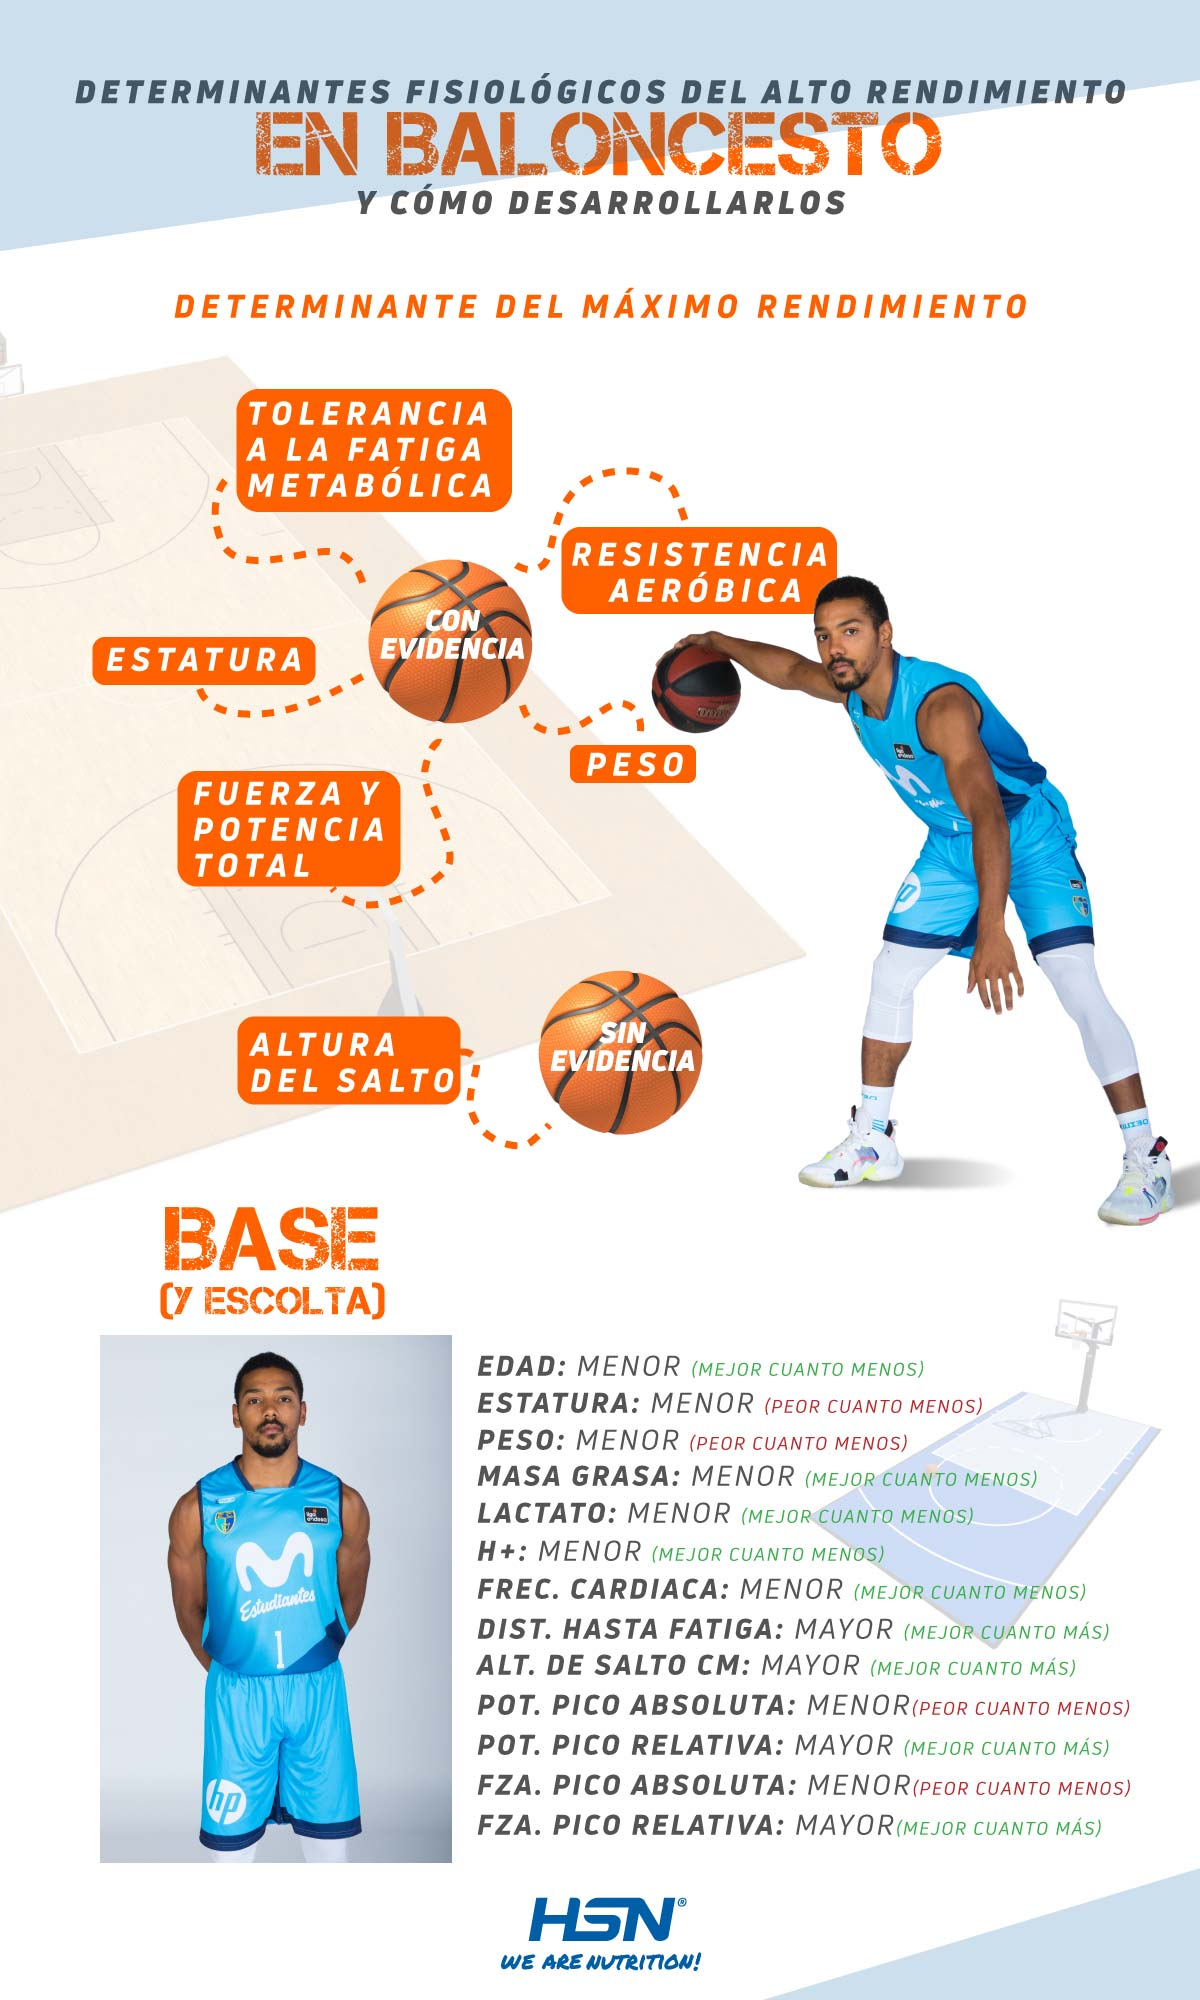 Determinantes Fisiológicas Base Baloncesto